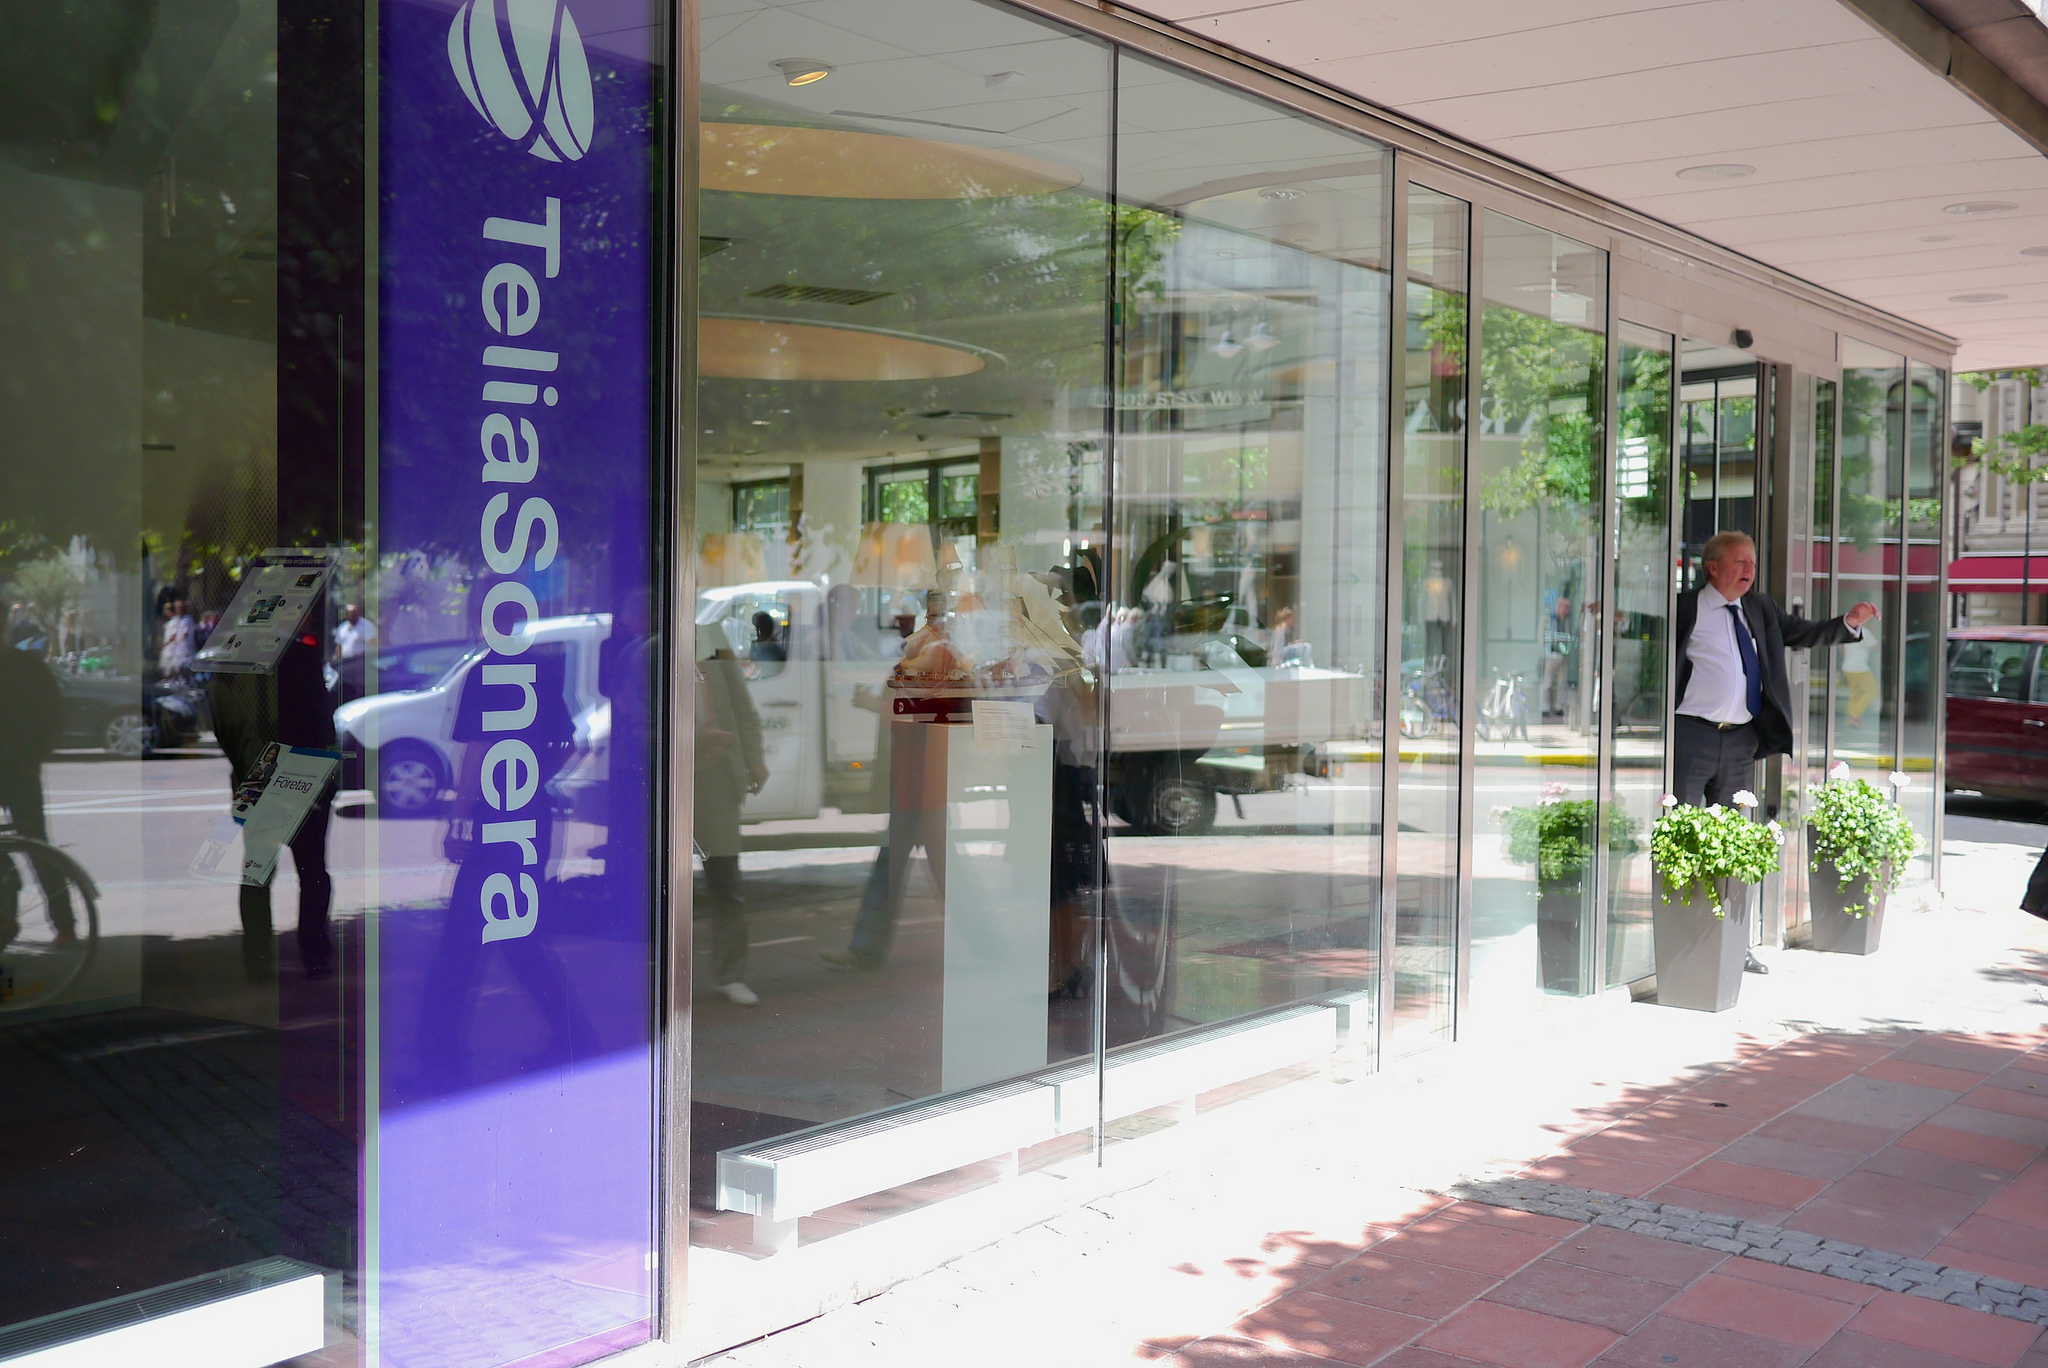 Telia relies on established names for Uzbek bribery probe